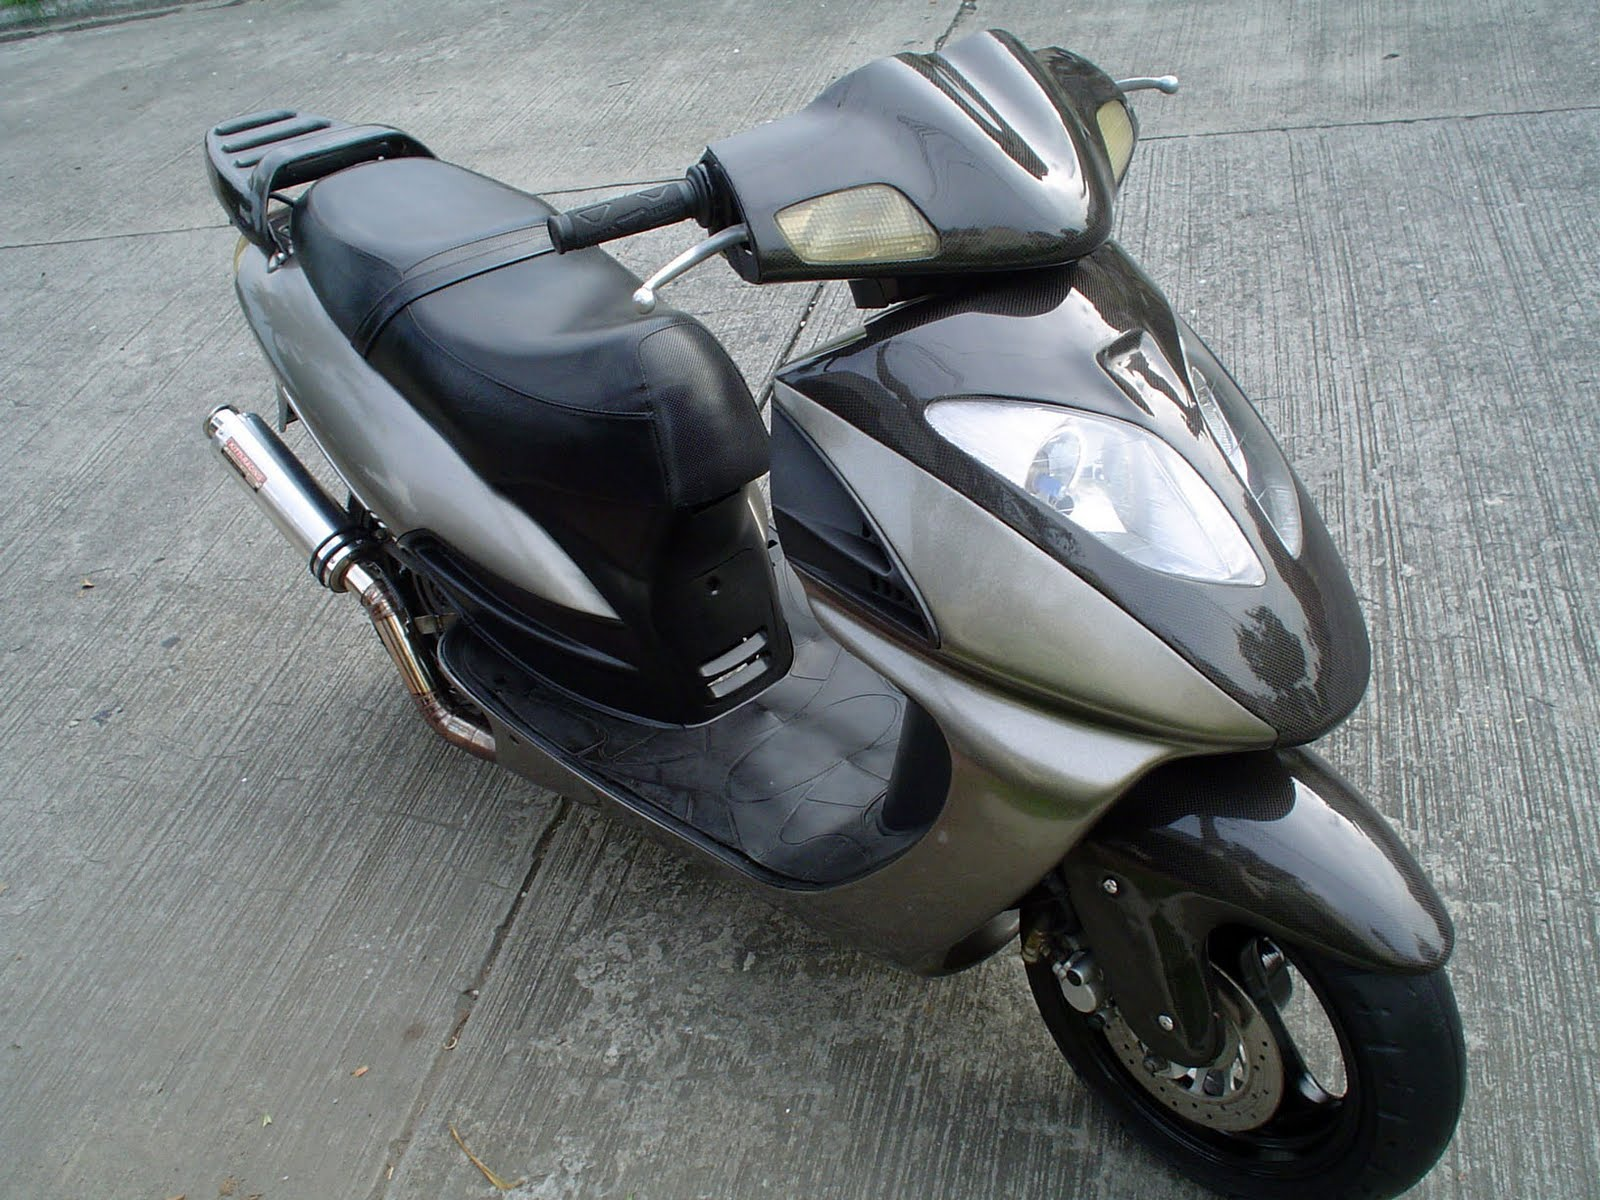 Tuning the scooter: what is it